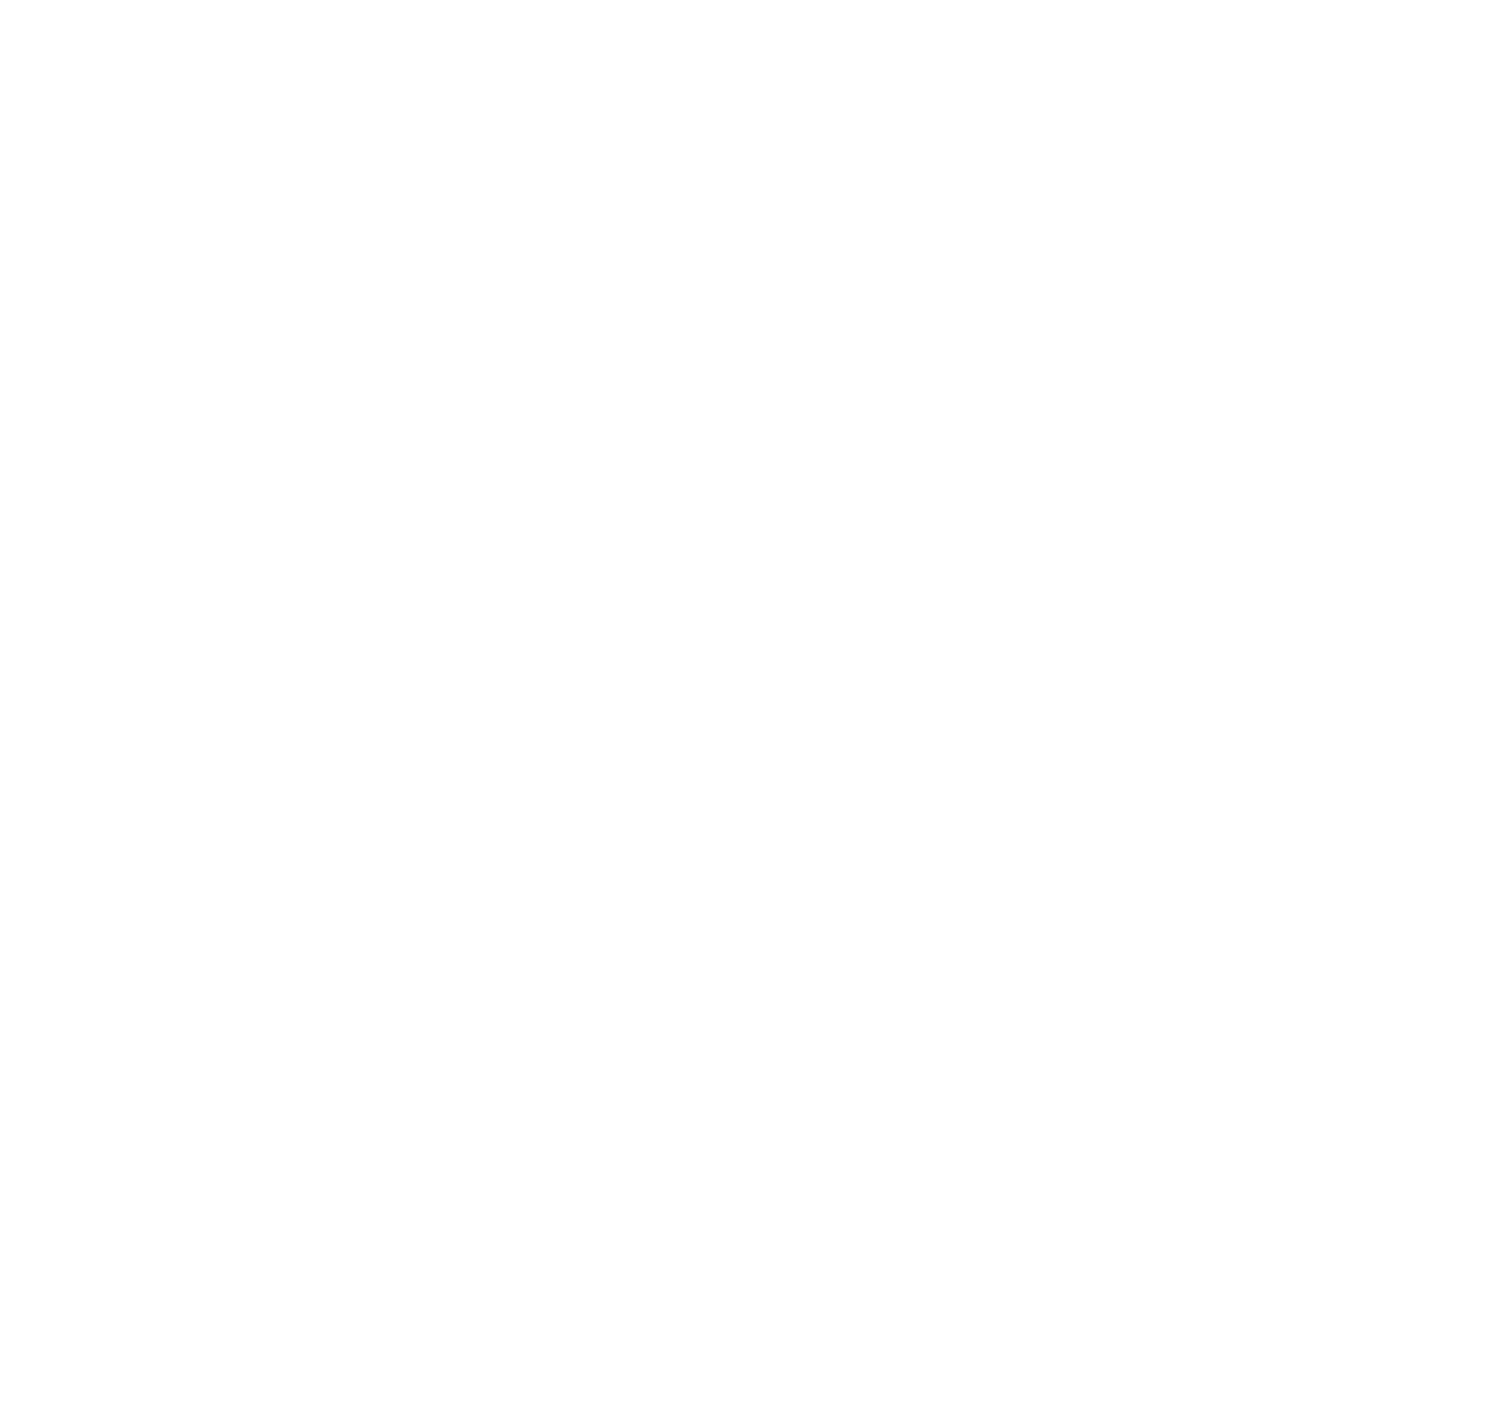 CAS Recruitment